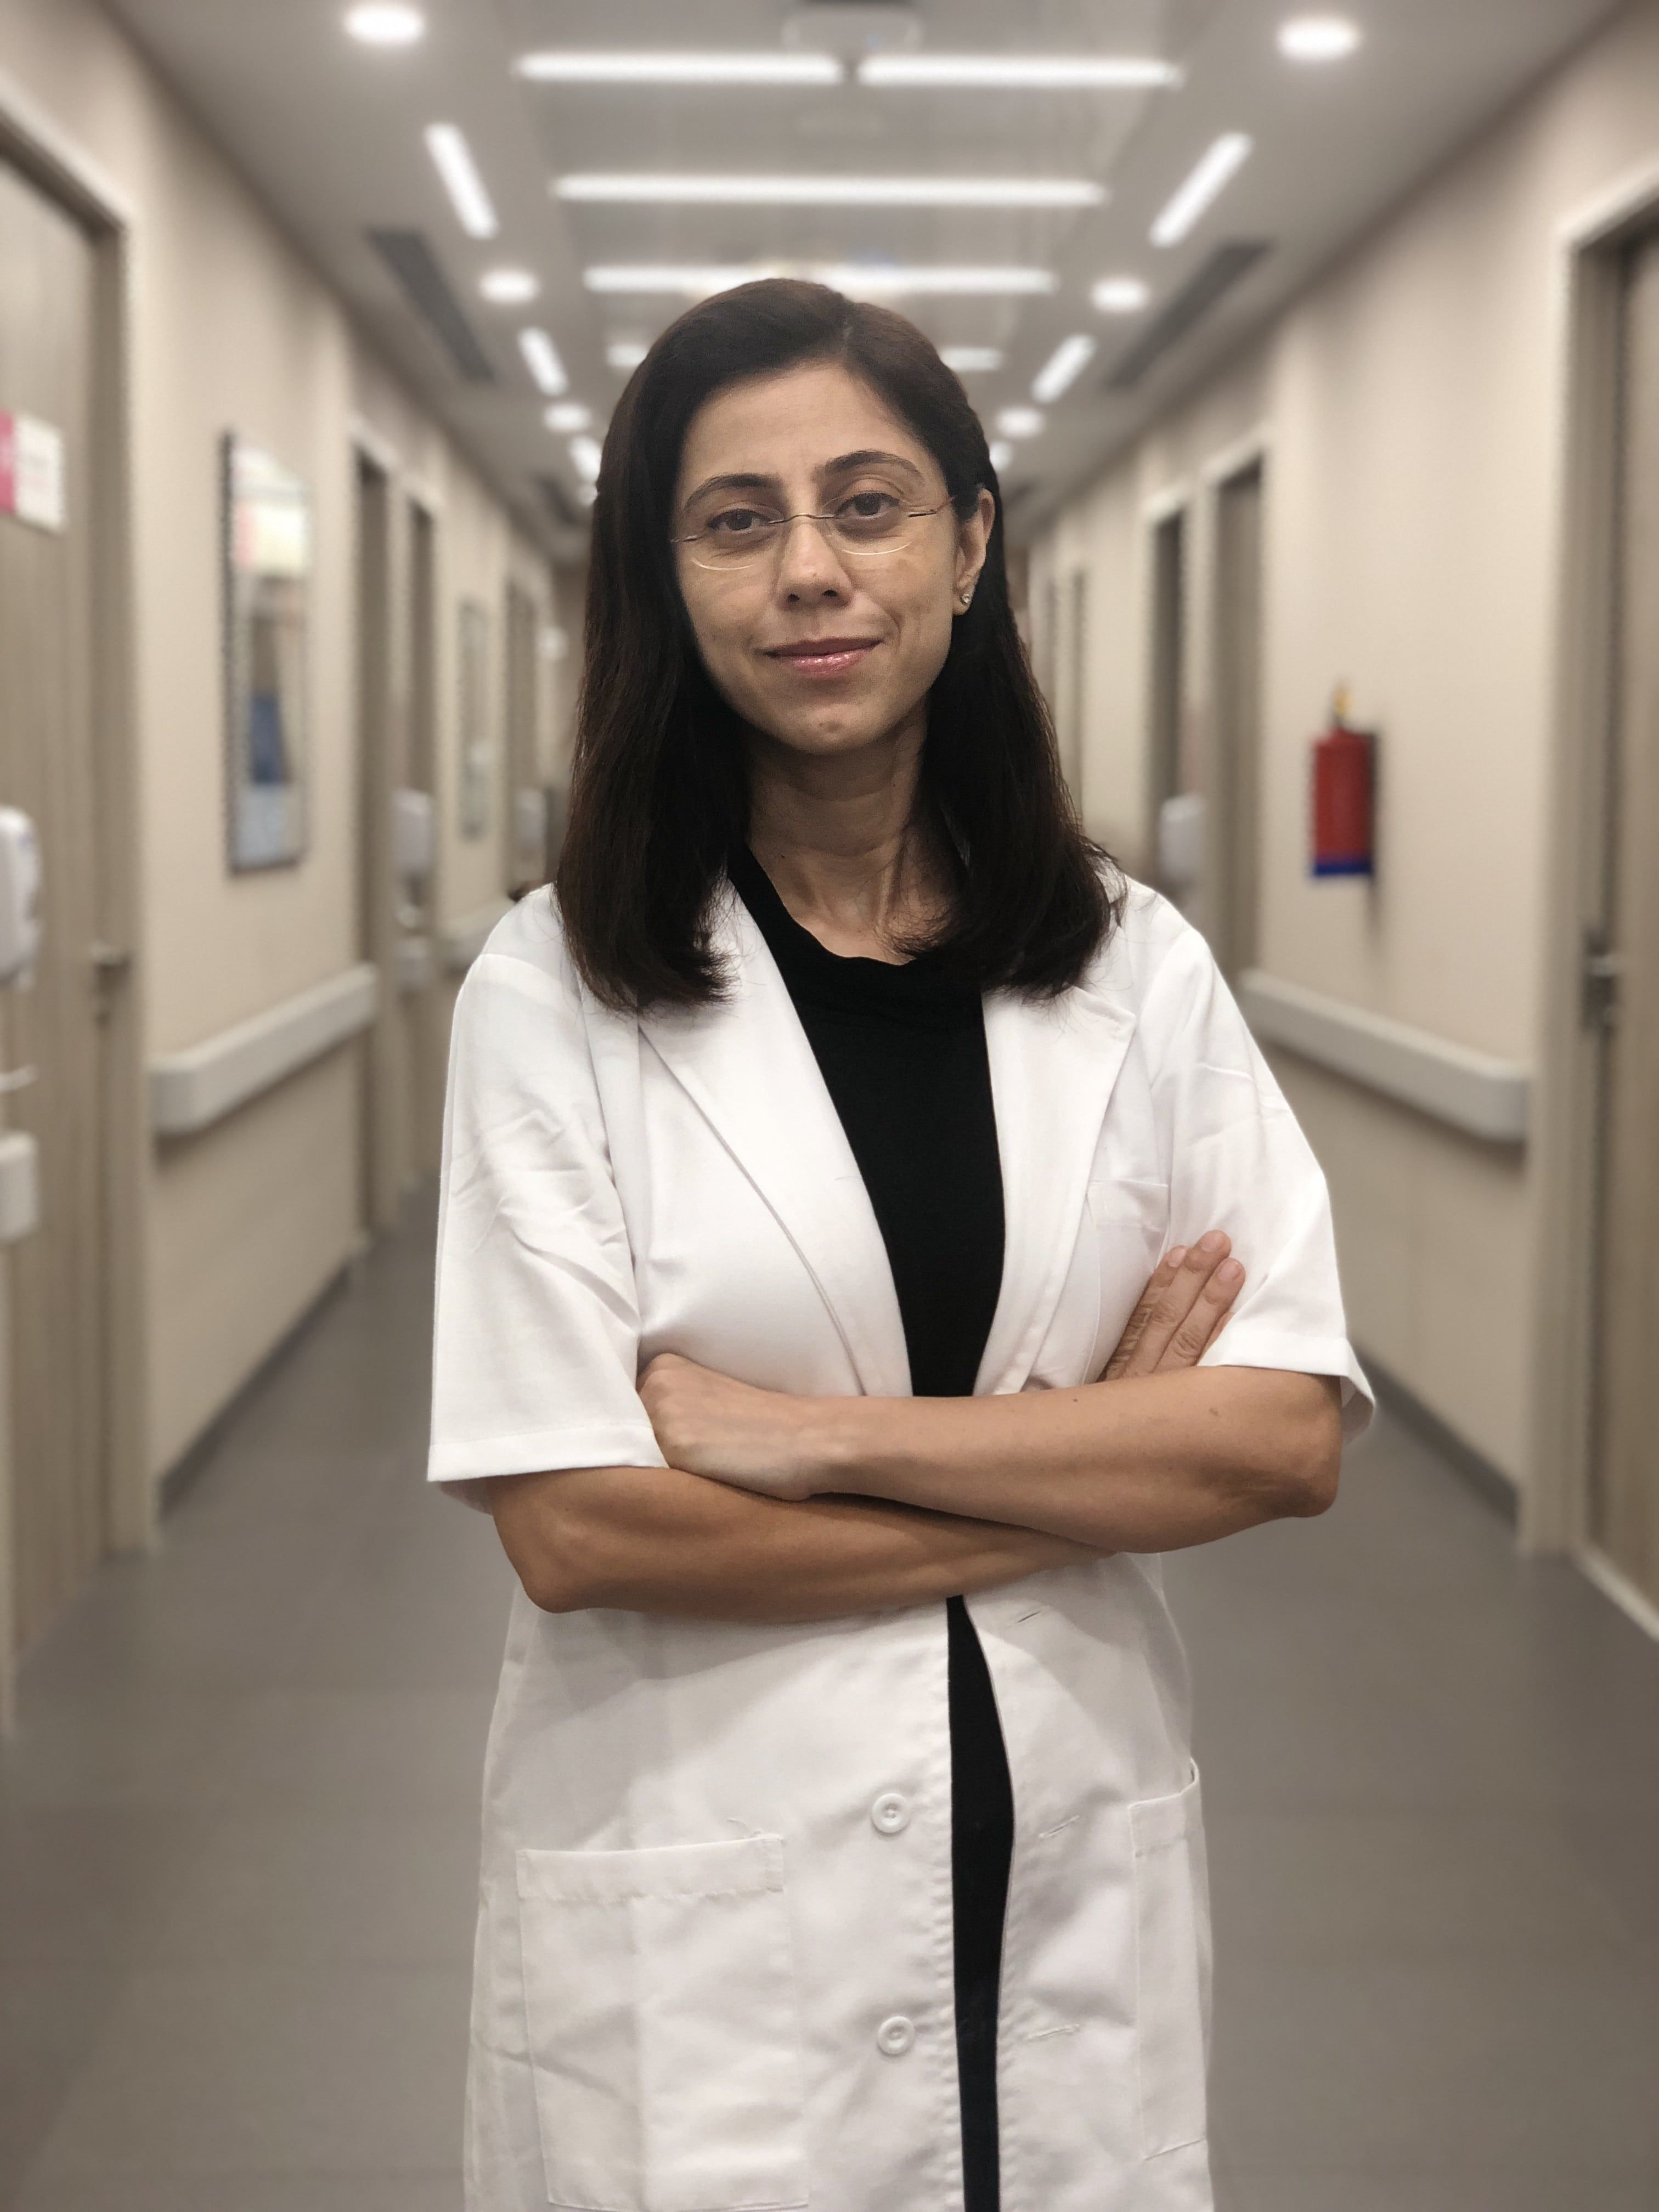 Dr Seema Oberoi Lall has 17+ years of experience across Kaya